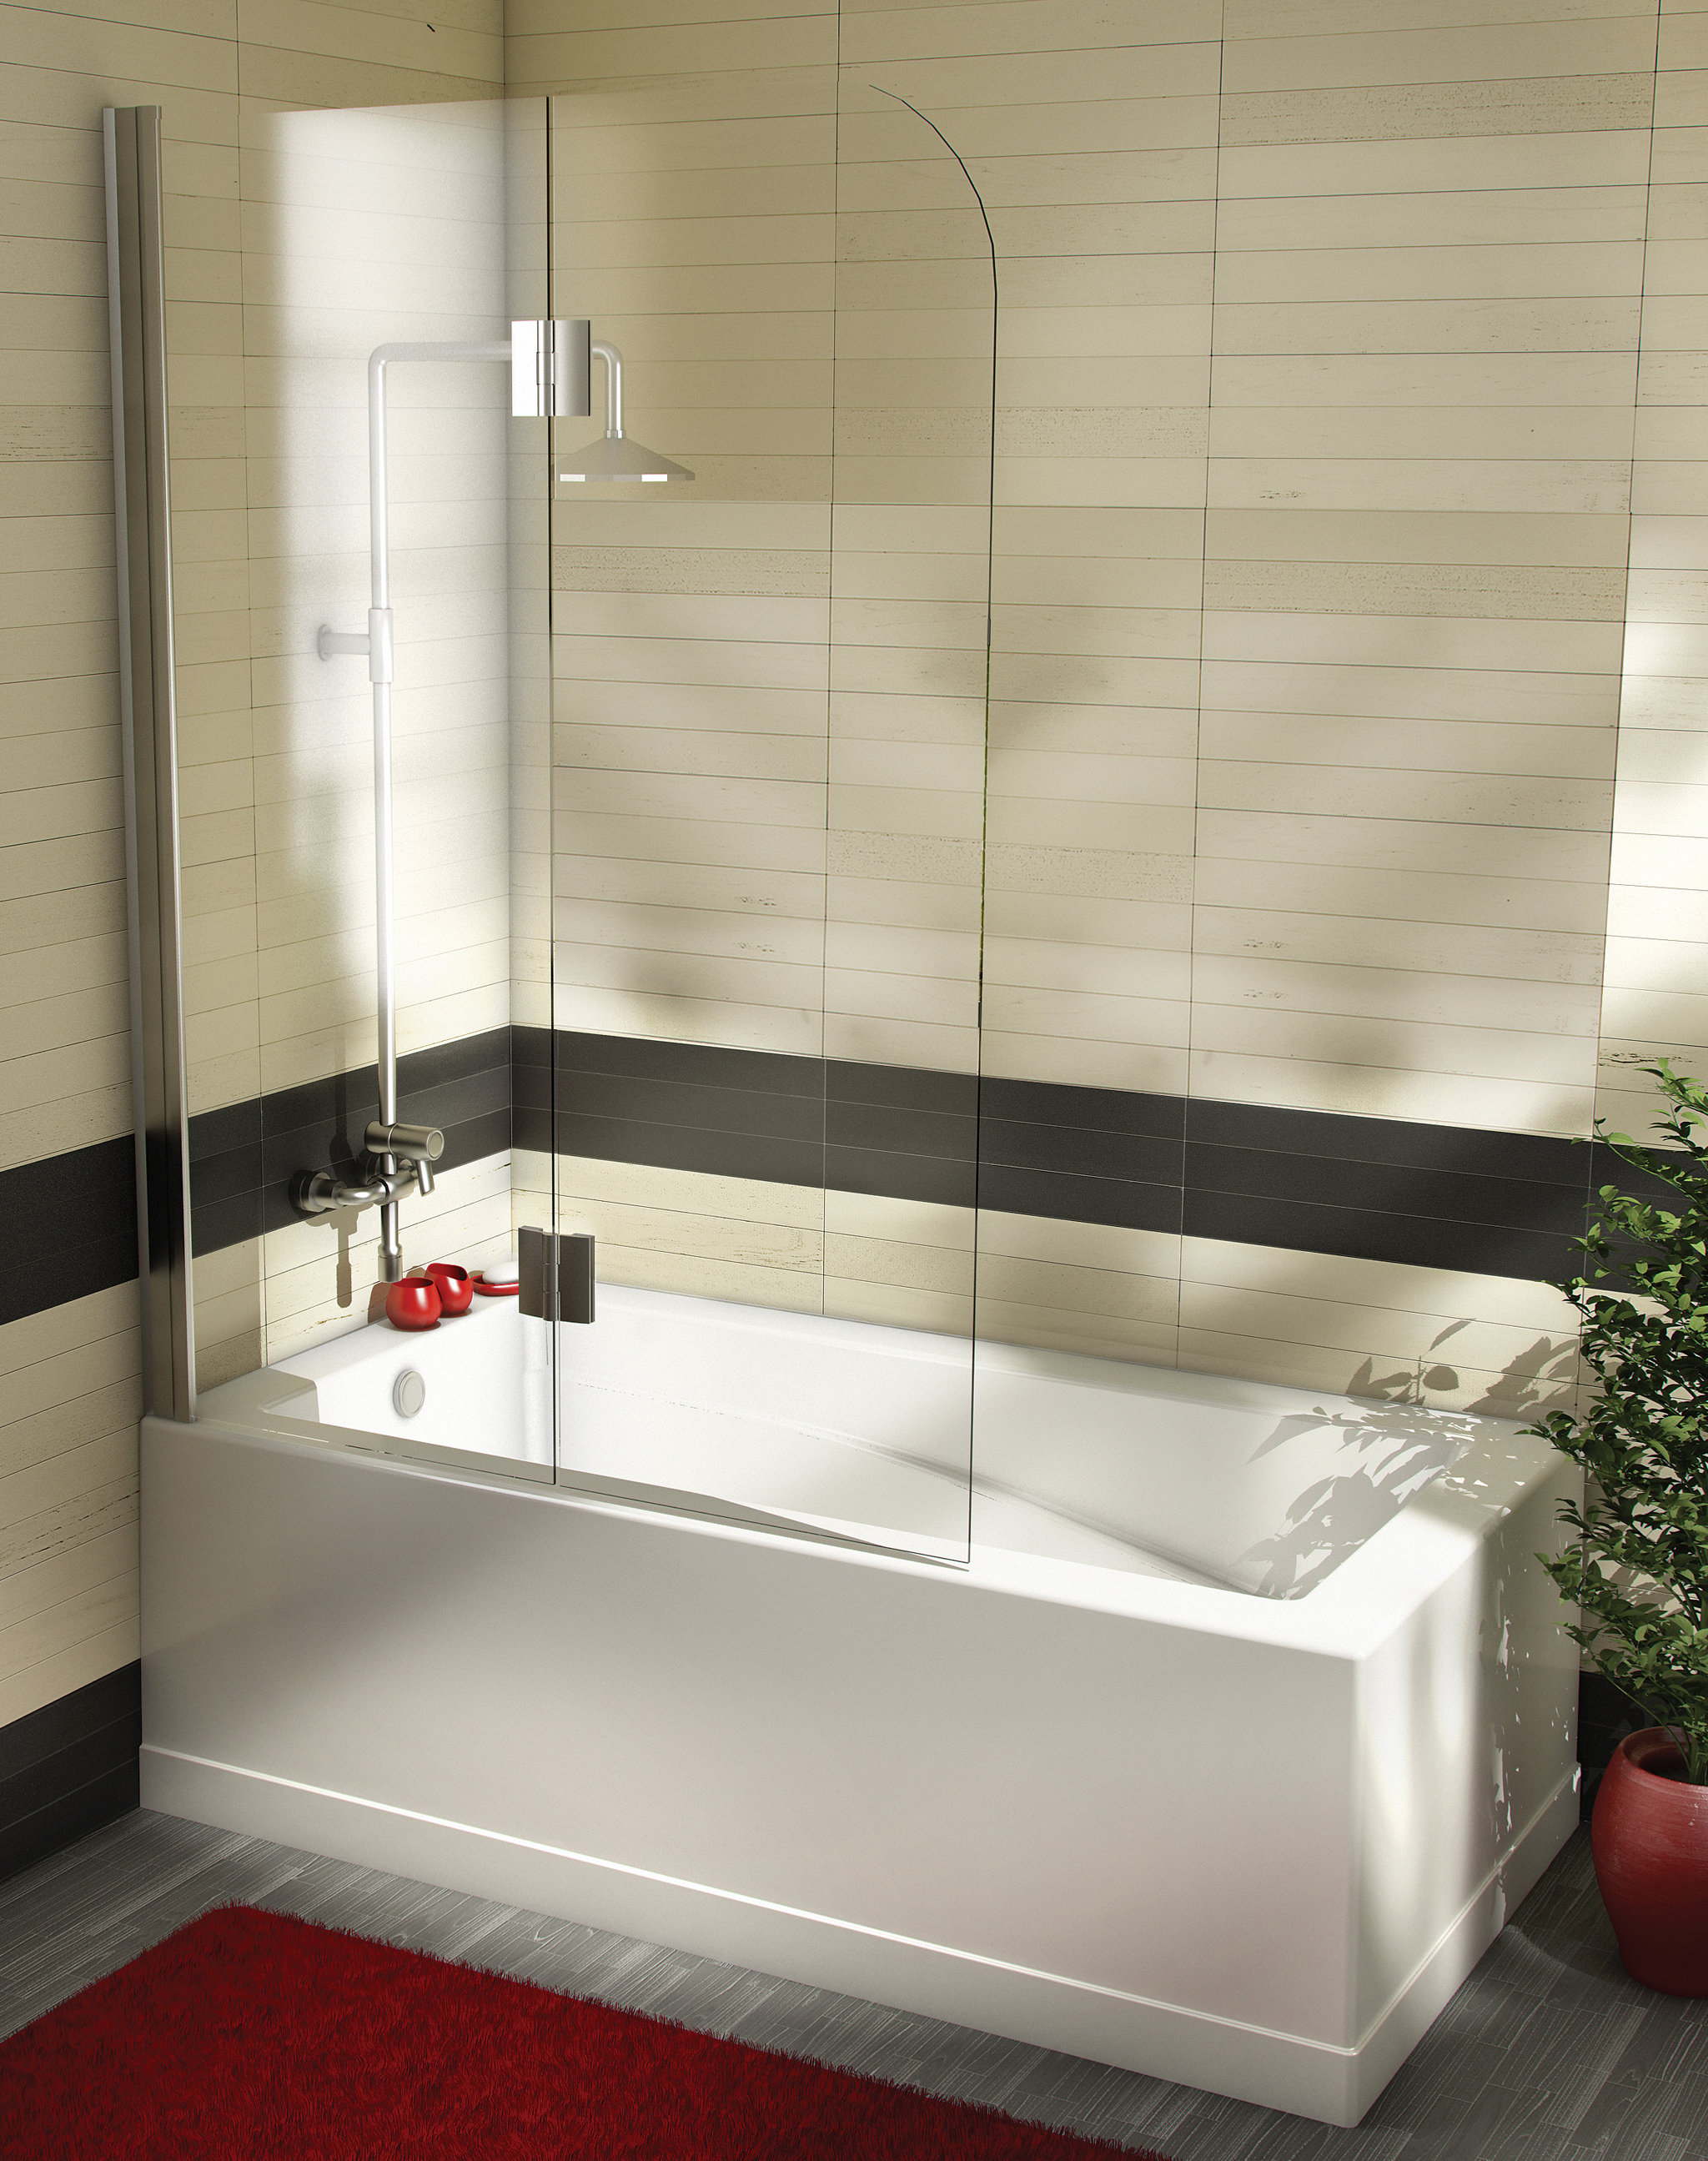 Bathtub shower screen | Oceania